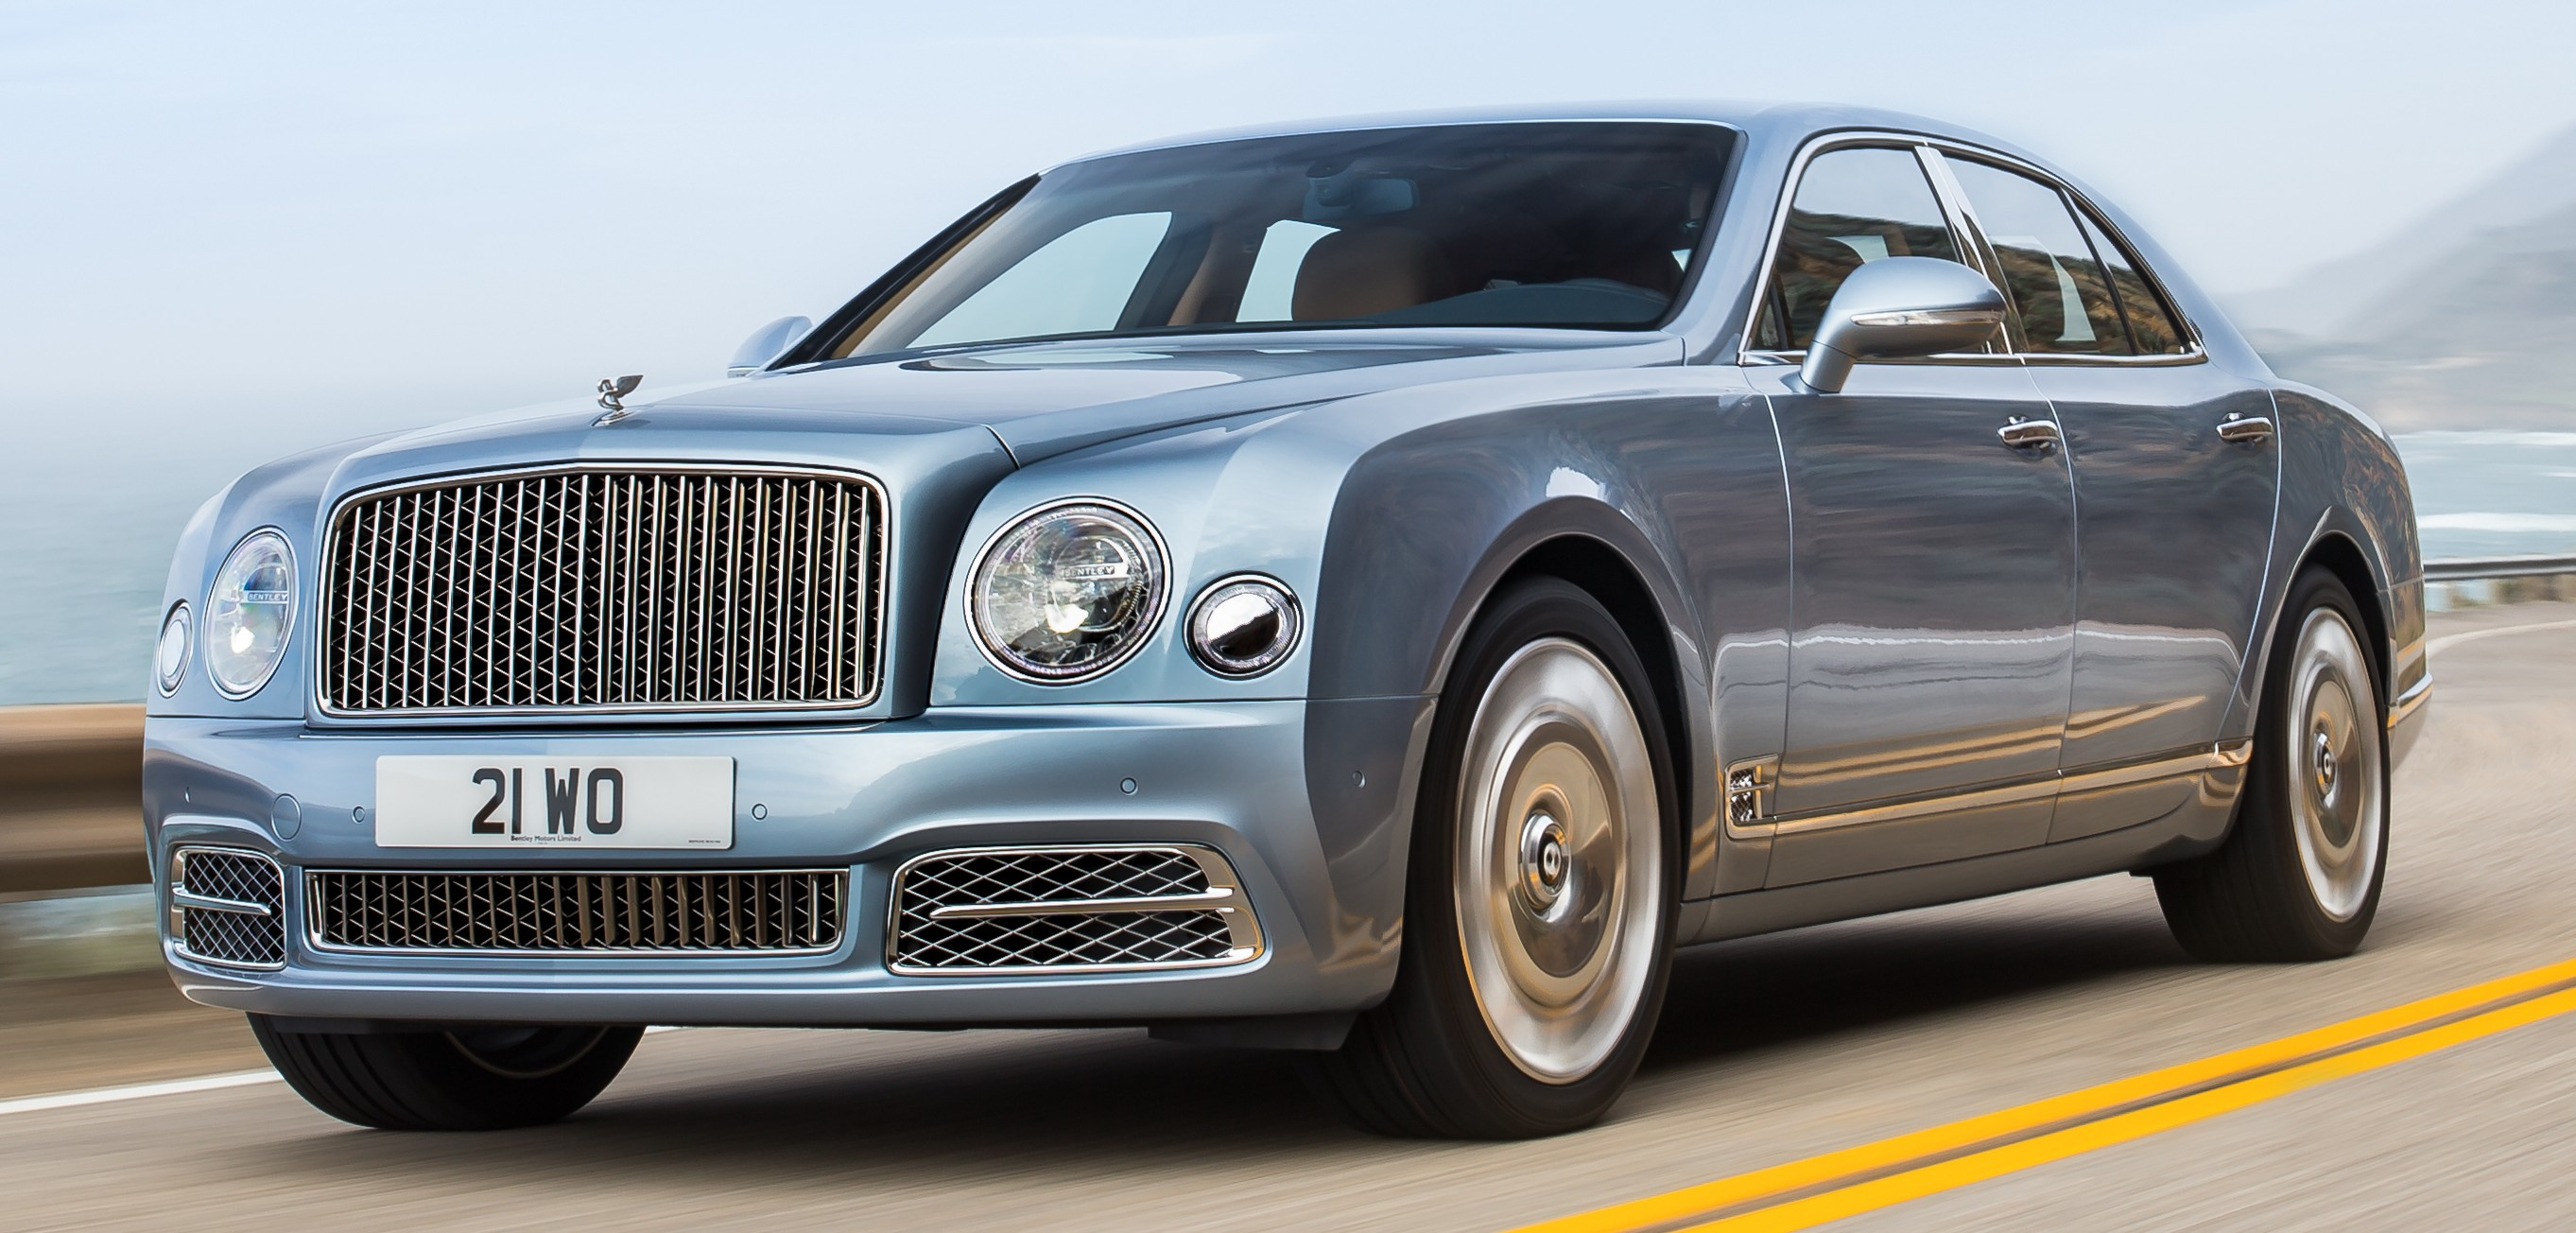 bentley mulsanne facelift debuts new face more technology and a new extended wheelbase variant. Black Bedroom Furniture Sets. Home Design Ideas